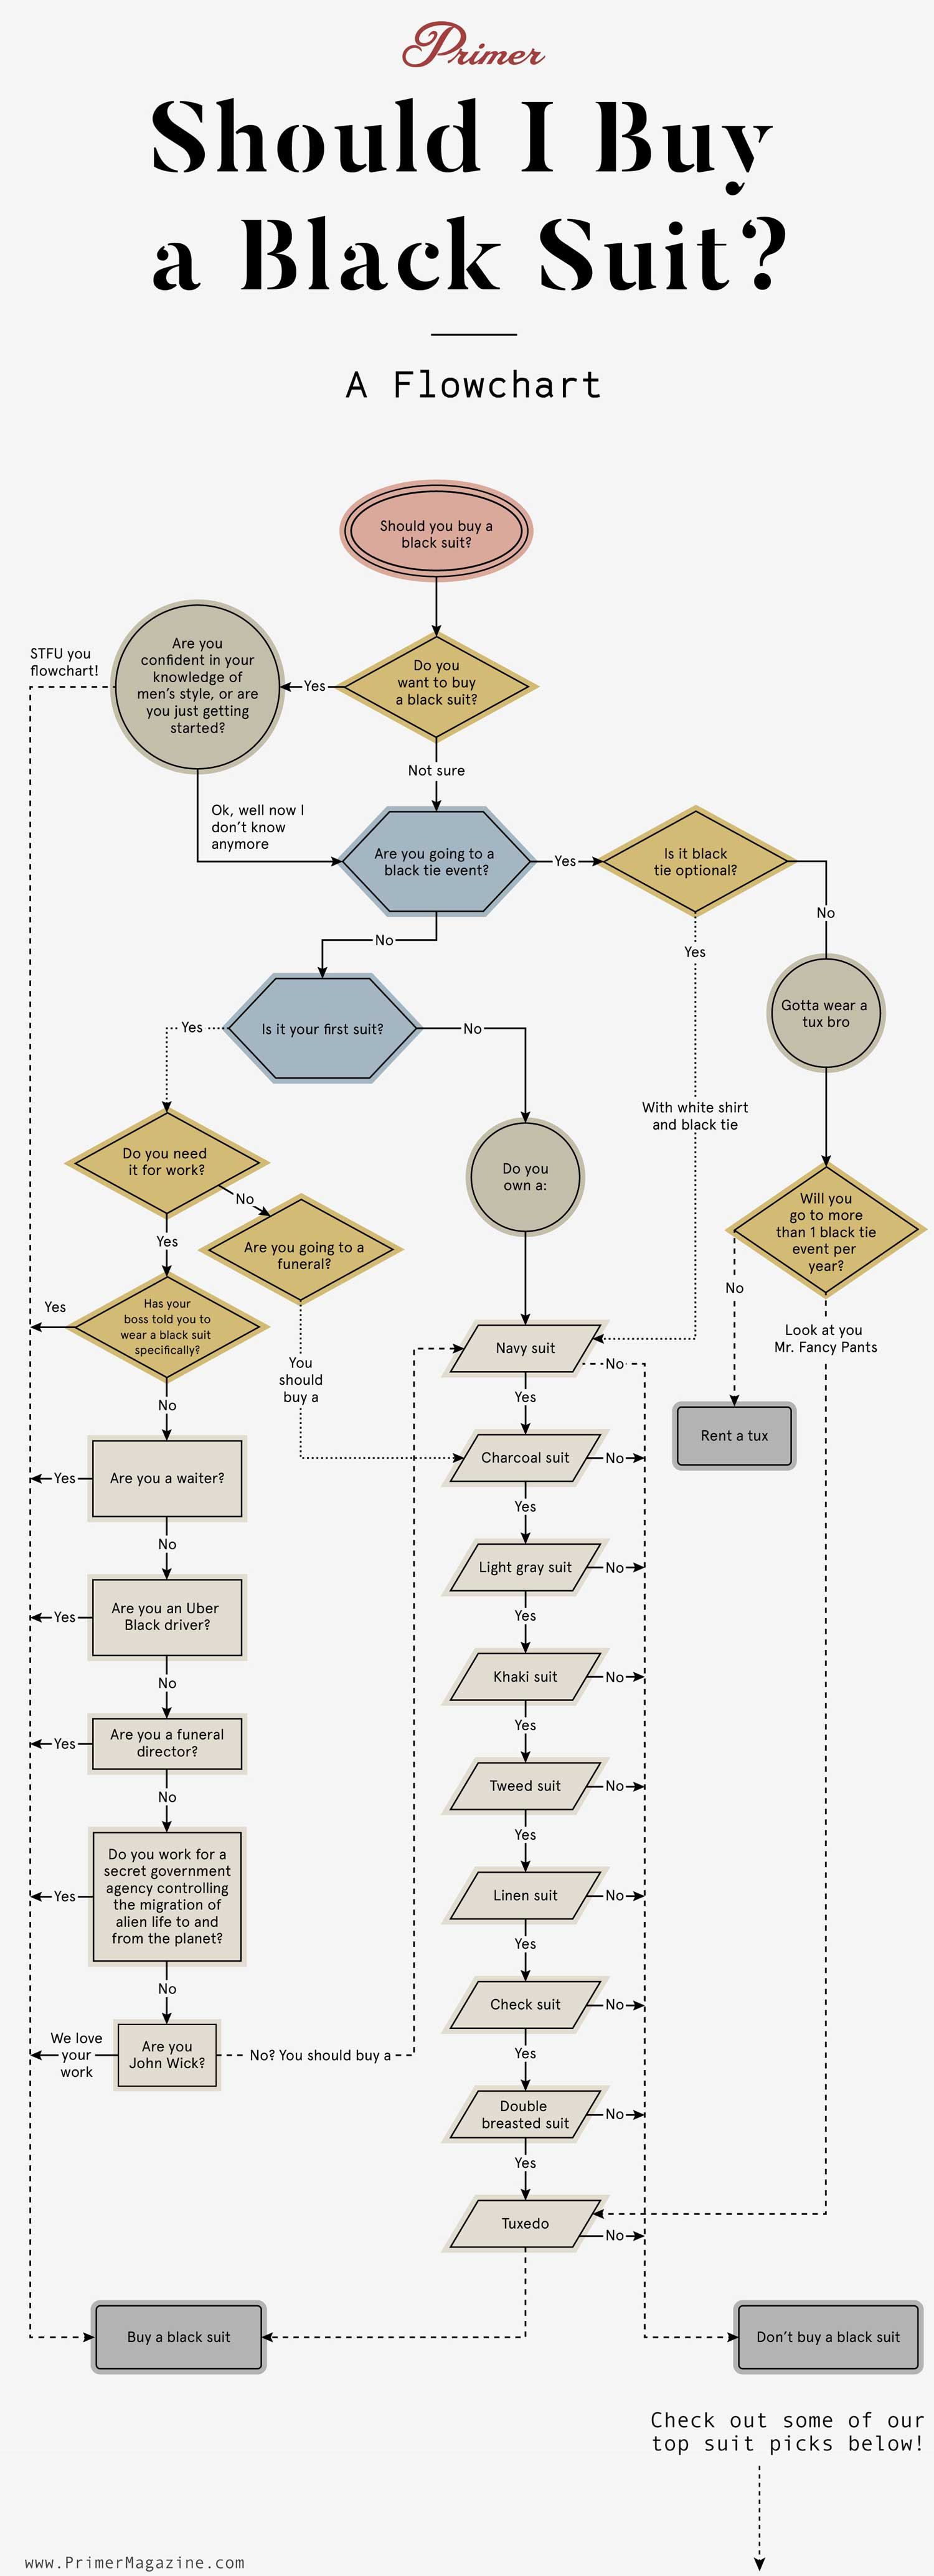 Should I Buy a Black Suit? A Flowchart